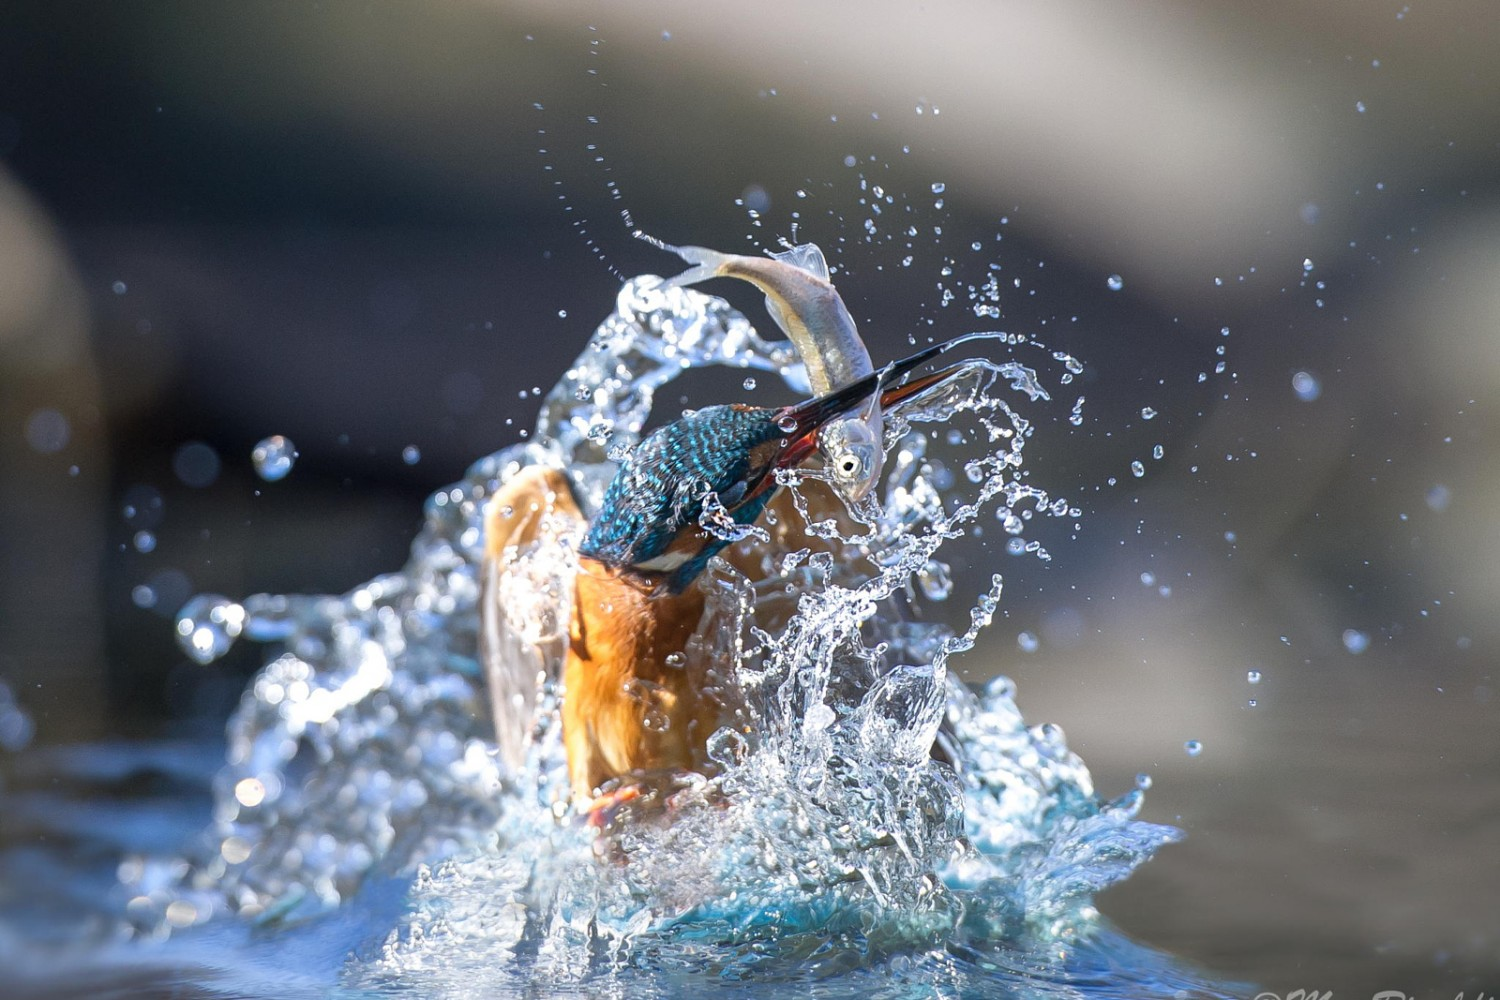 25 National Geographic-Worthy Photos of Kingfishers